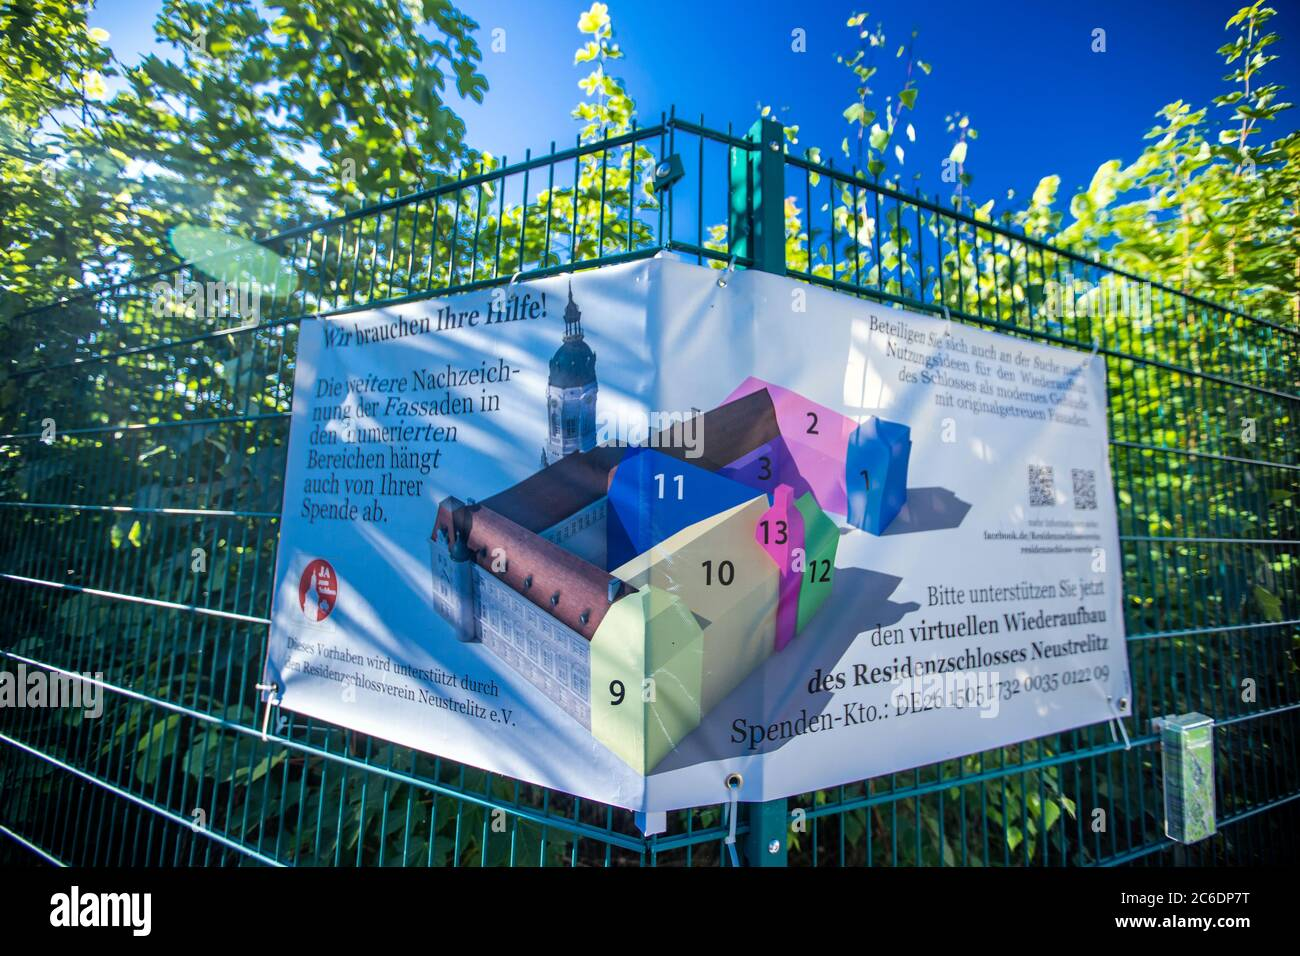 Neustrelitz, Germany. 23rd June, 2020. An advertising poster of the Residenzschlossverein at the Kavaliershaus at today's Schlossplatz. The house is the only preserved building of the former Residenzschloss. Credit: Jens Büttner/dpa-Zentralbild/ZB/dpa/Alamy Live News Stock Photo